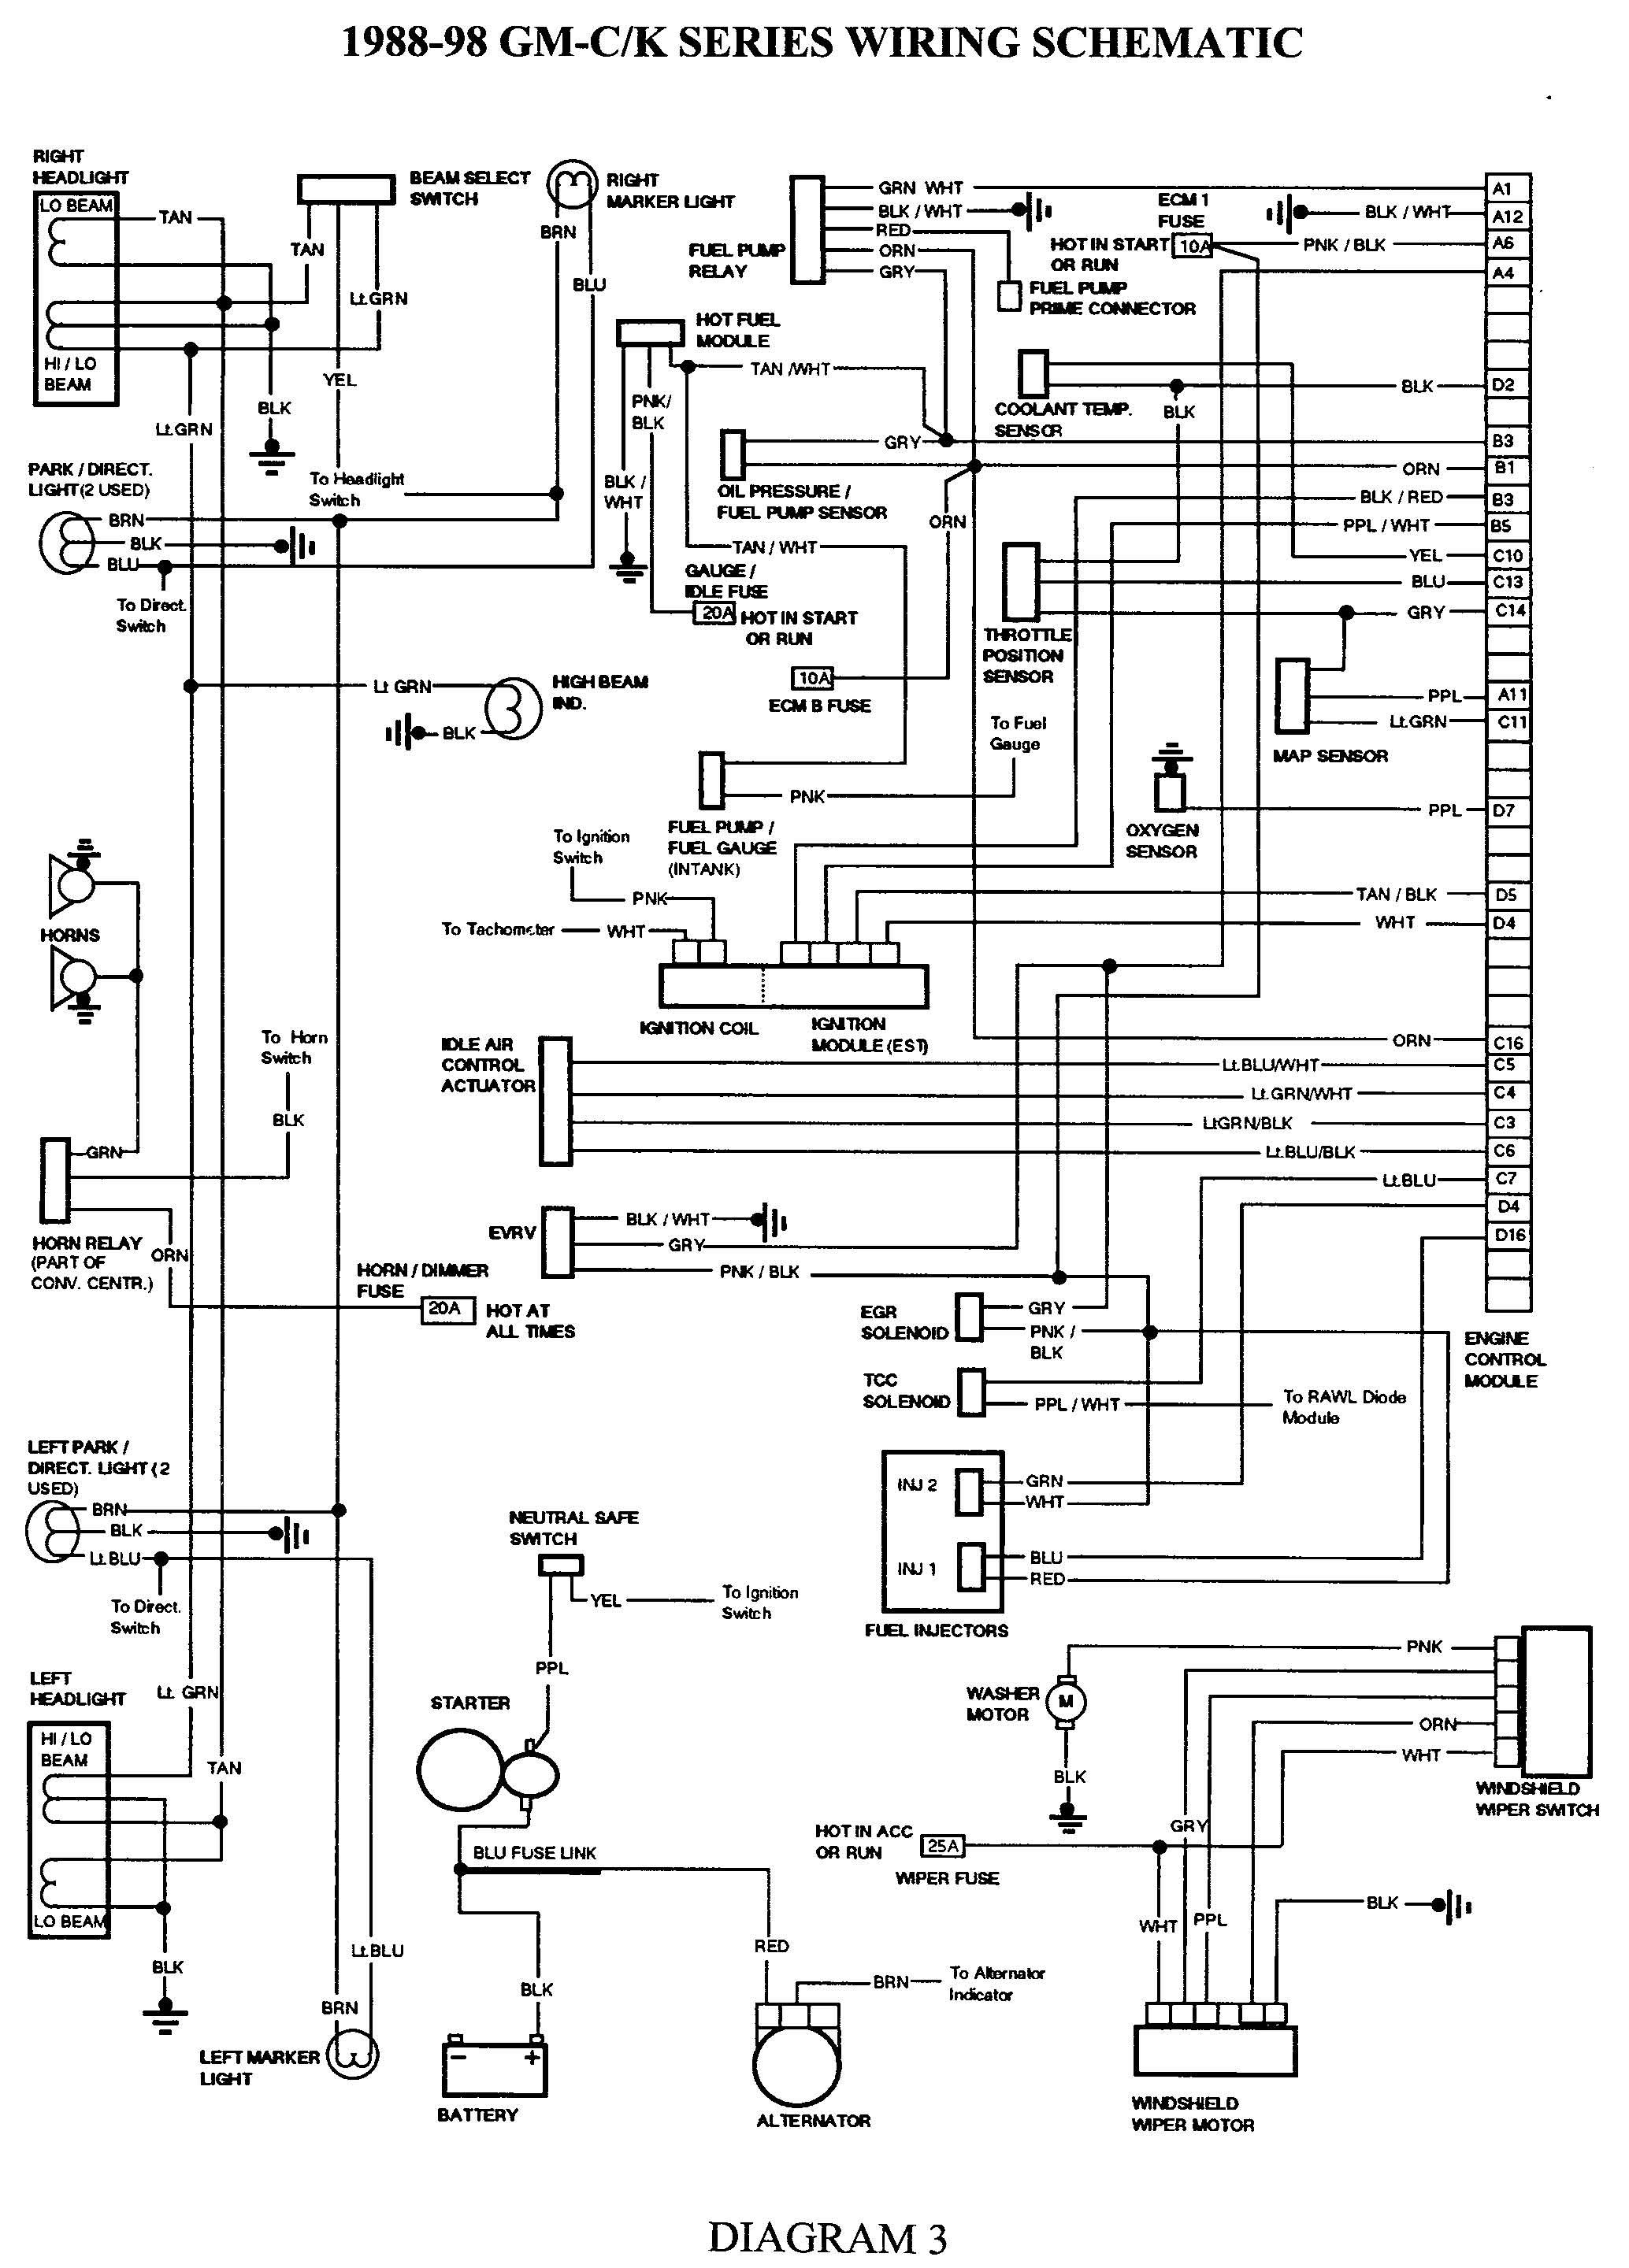 87 C10 Engine Wiring Harness Diagram - Data Wiring Diagram